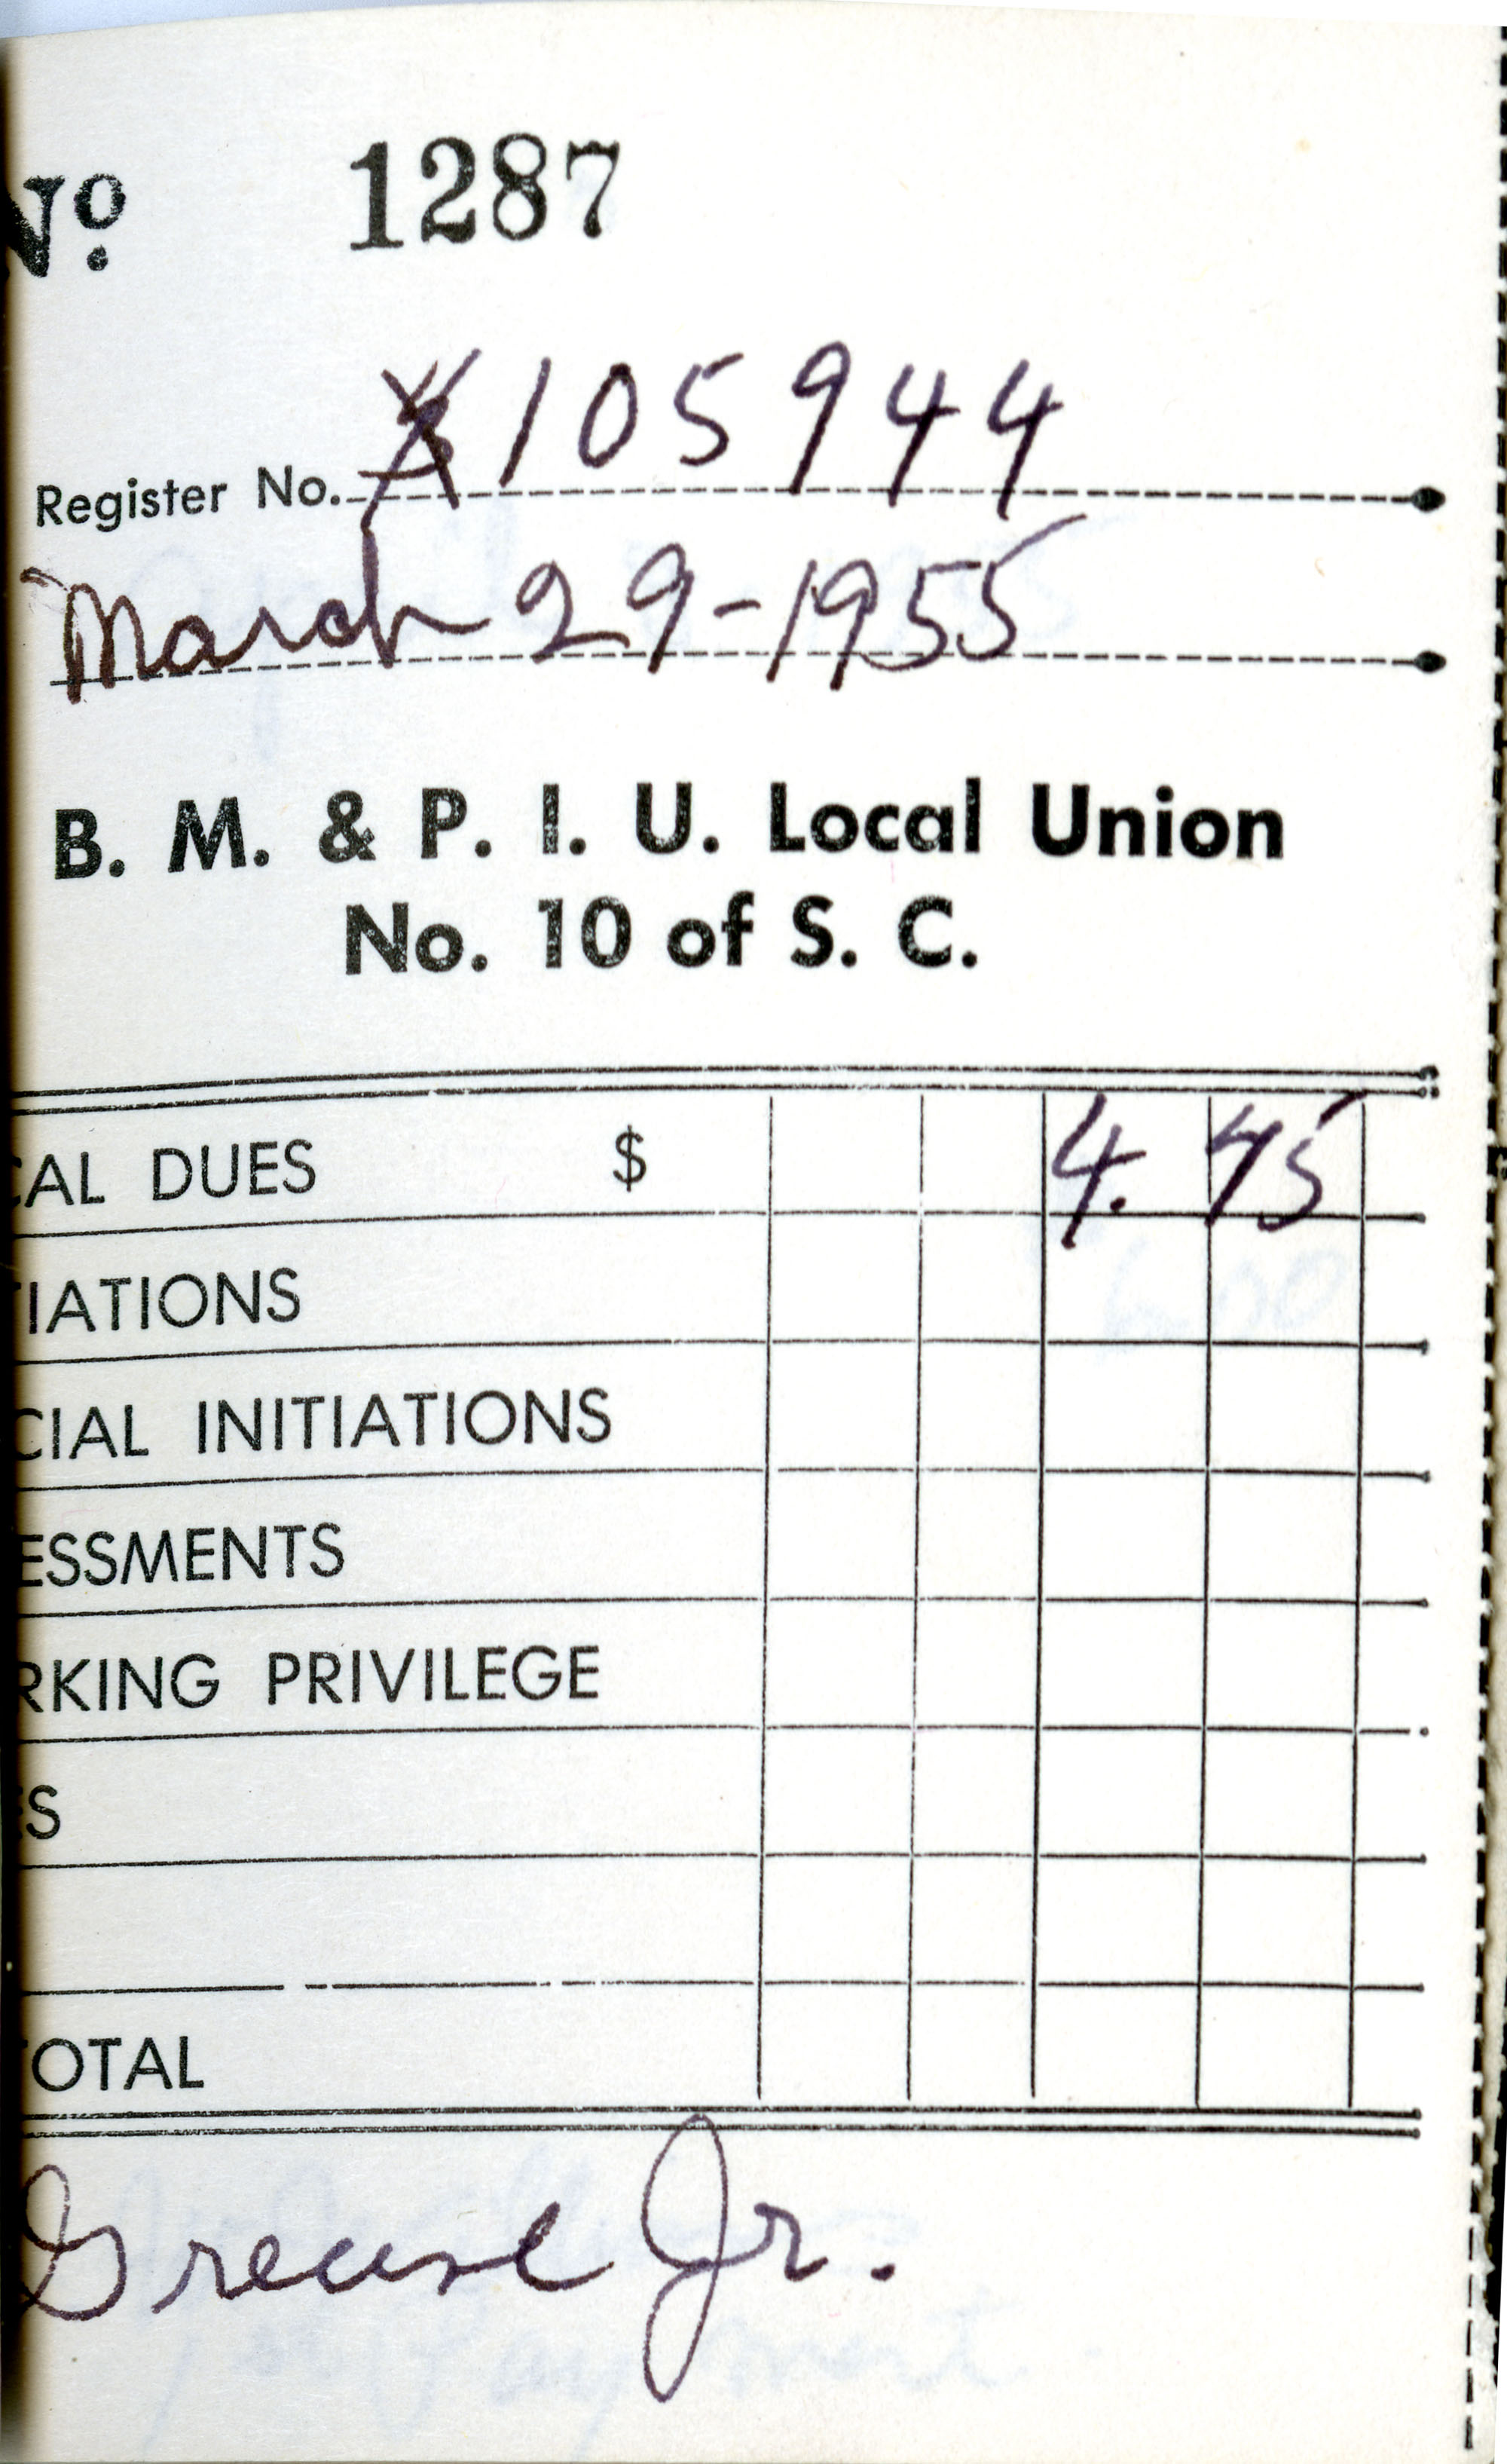 Receipt Book 4, Page 21